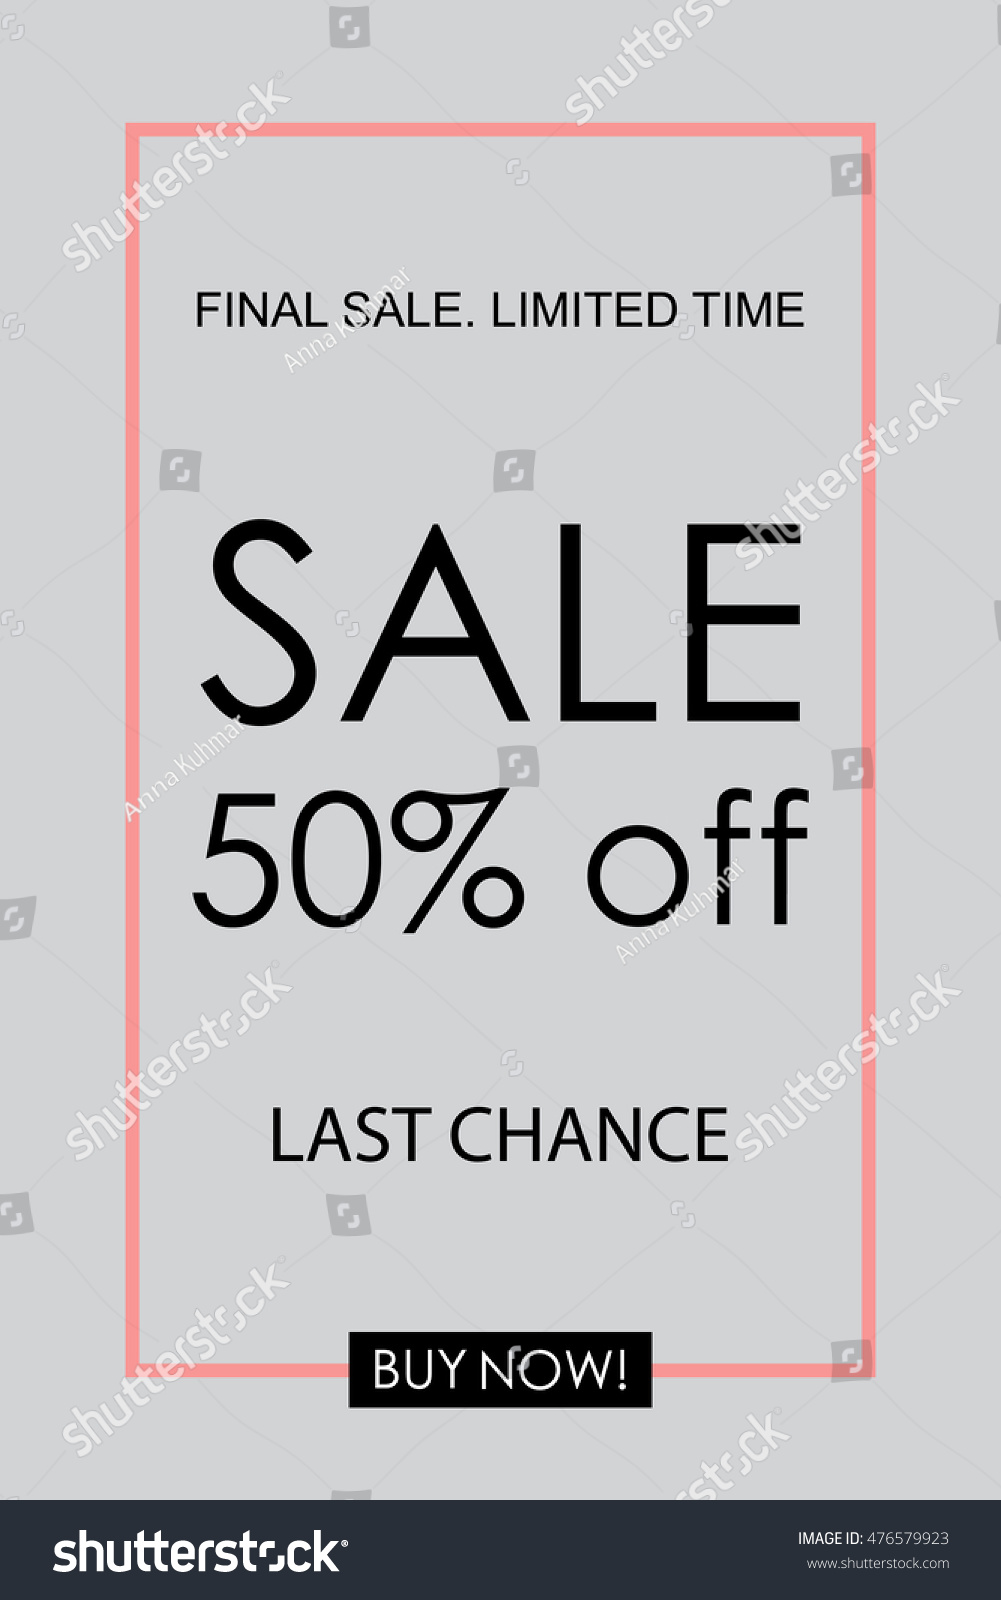 Promotional Poster Social Media Sale Banners Stock Vector HD ...